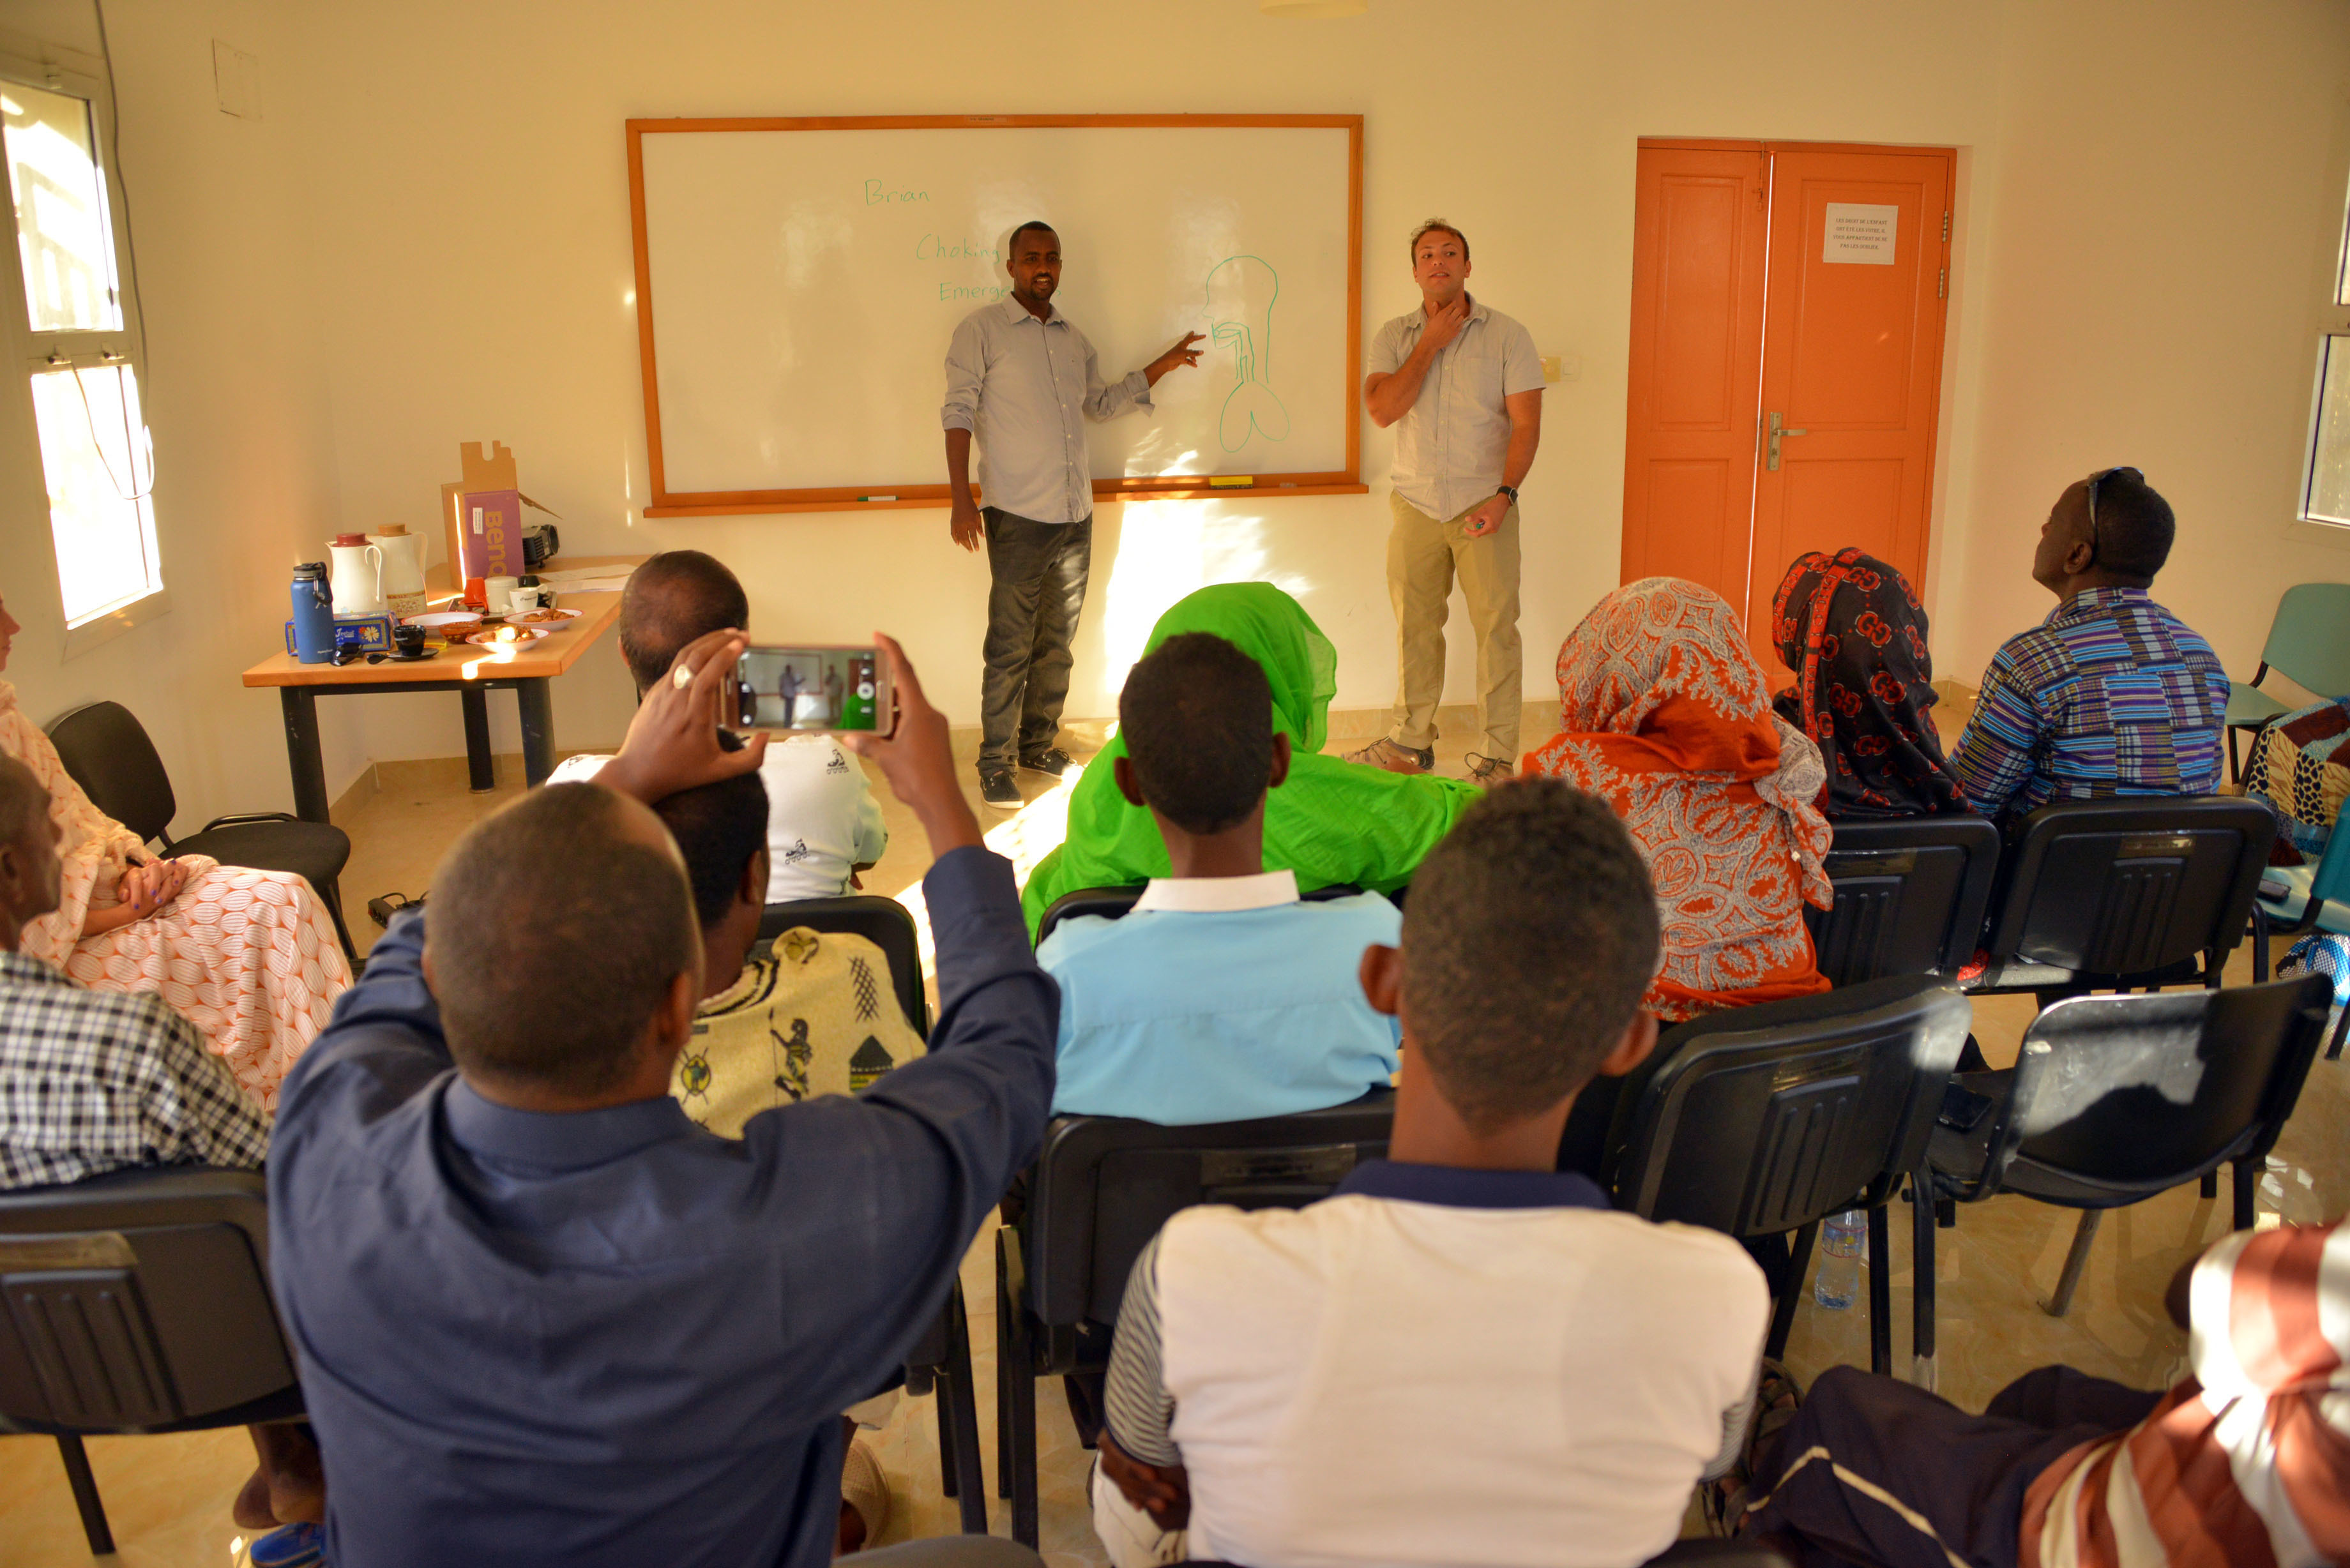 SOS Village D' Enfants – Tadjoura administrators, staff members, and caretakers record footage and listen to a discussion on airway blockage given by Sgt. Brian Duckworth, a civil affairs team medic with C/Co 411th Civil Affairs Battalion, here on January 3, 2017. The SOS Village provides cares for 90 Djiboutian children at its compound and partnered with a local civil affairs team to hold discussions in shared best practices related to administering first aid.                                                                                                                  (US Army Photo By: Staff Sgt. Gregory Williams C Co/411th Civil Affairs Battalion)